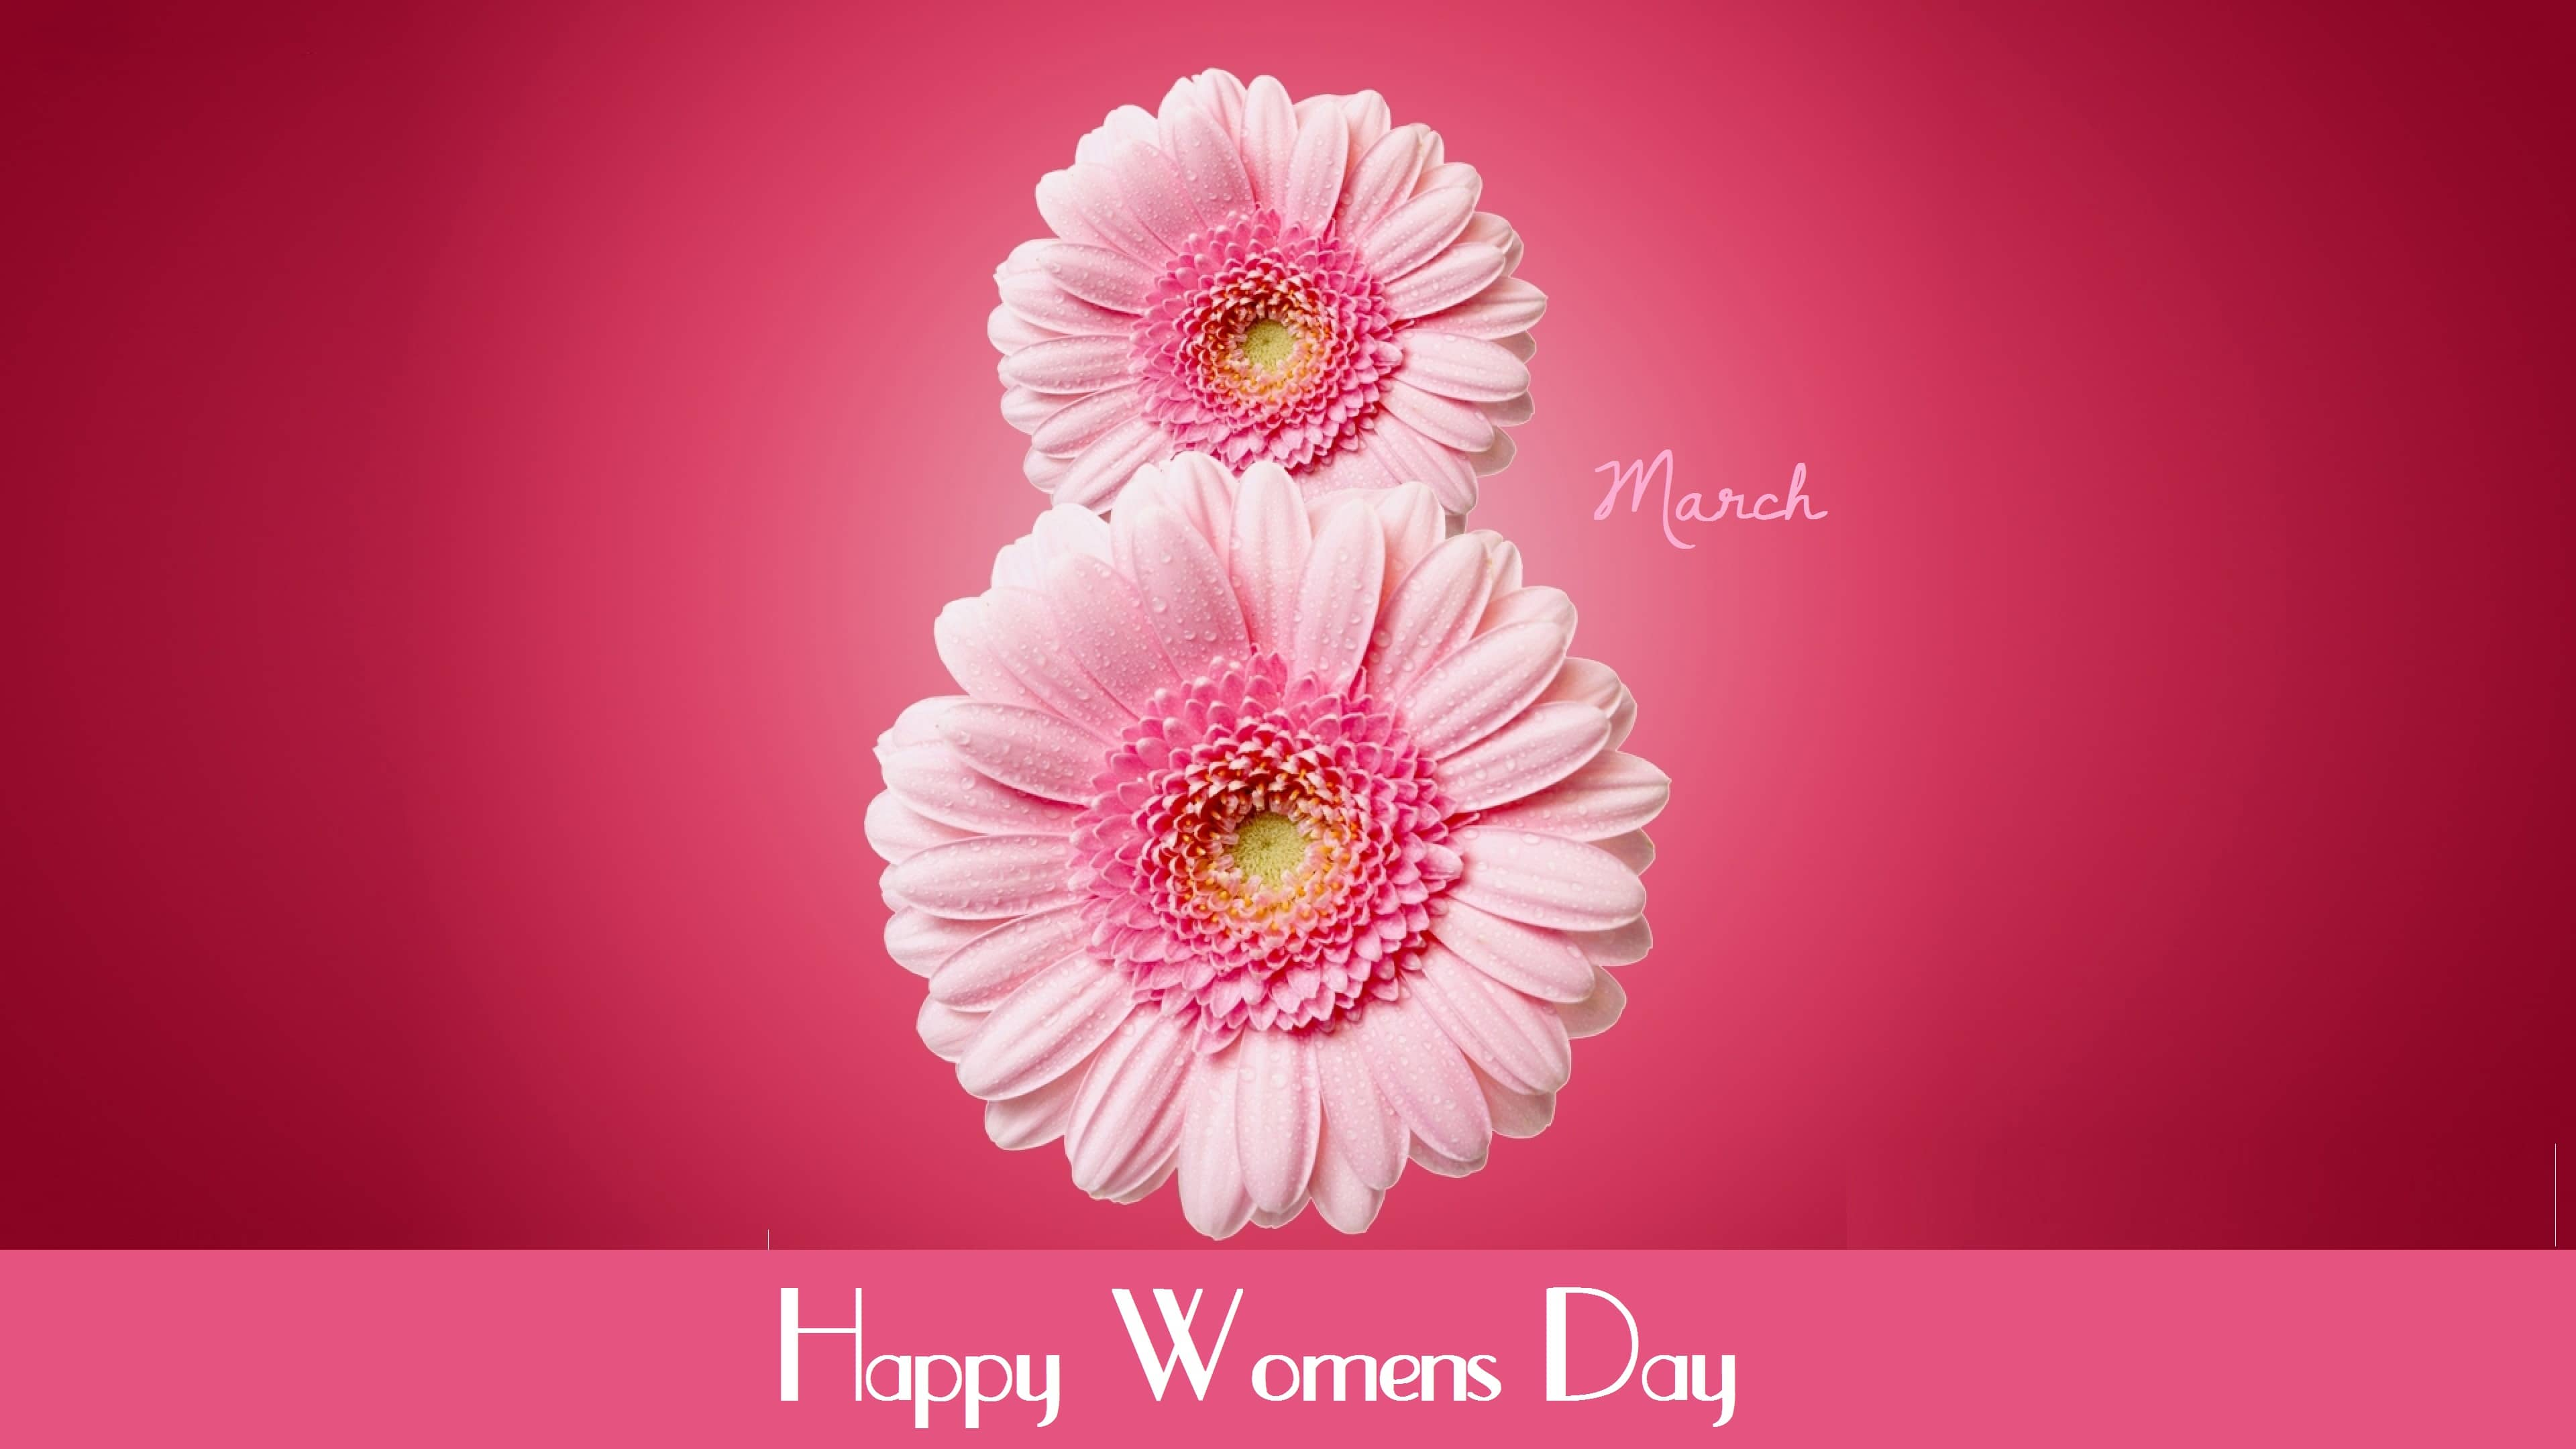 Images of Women's Day